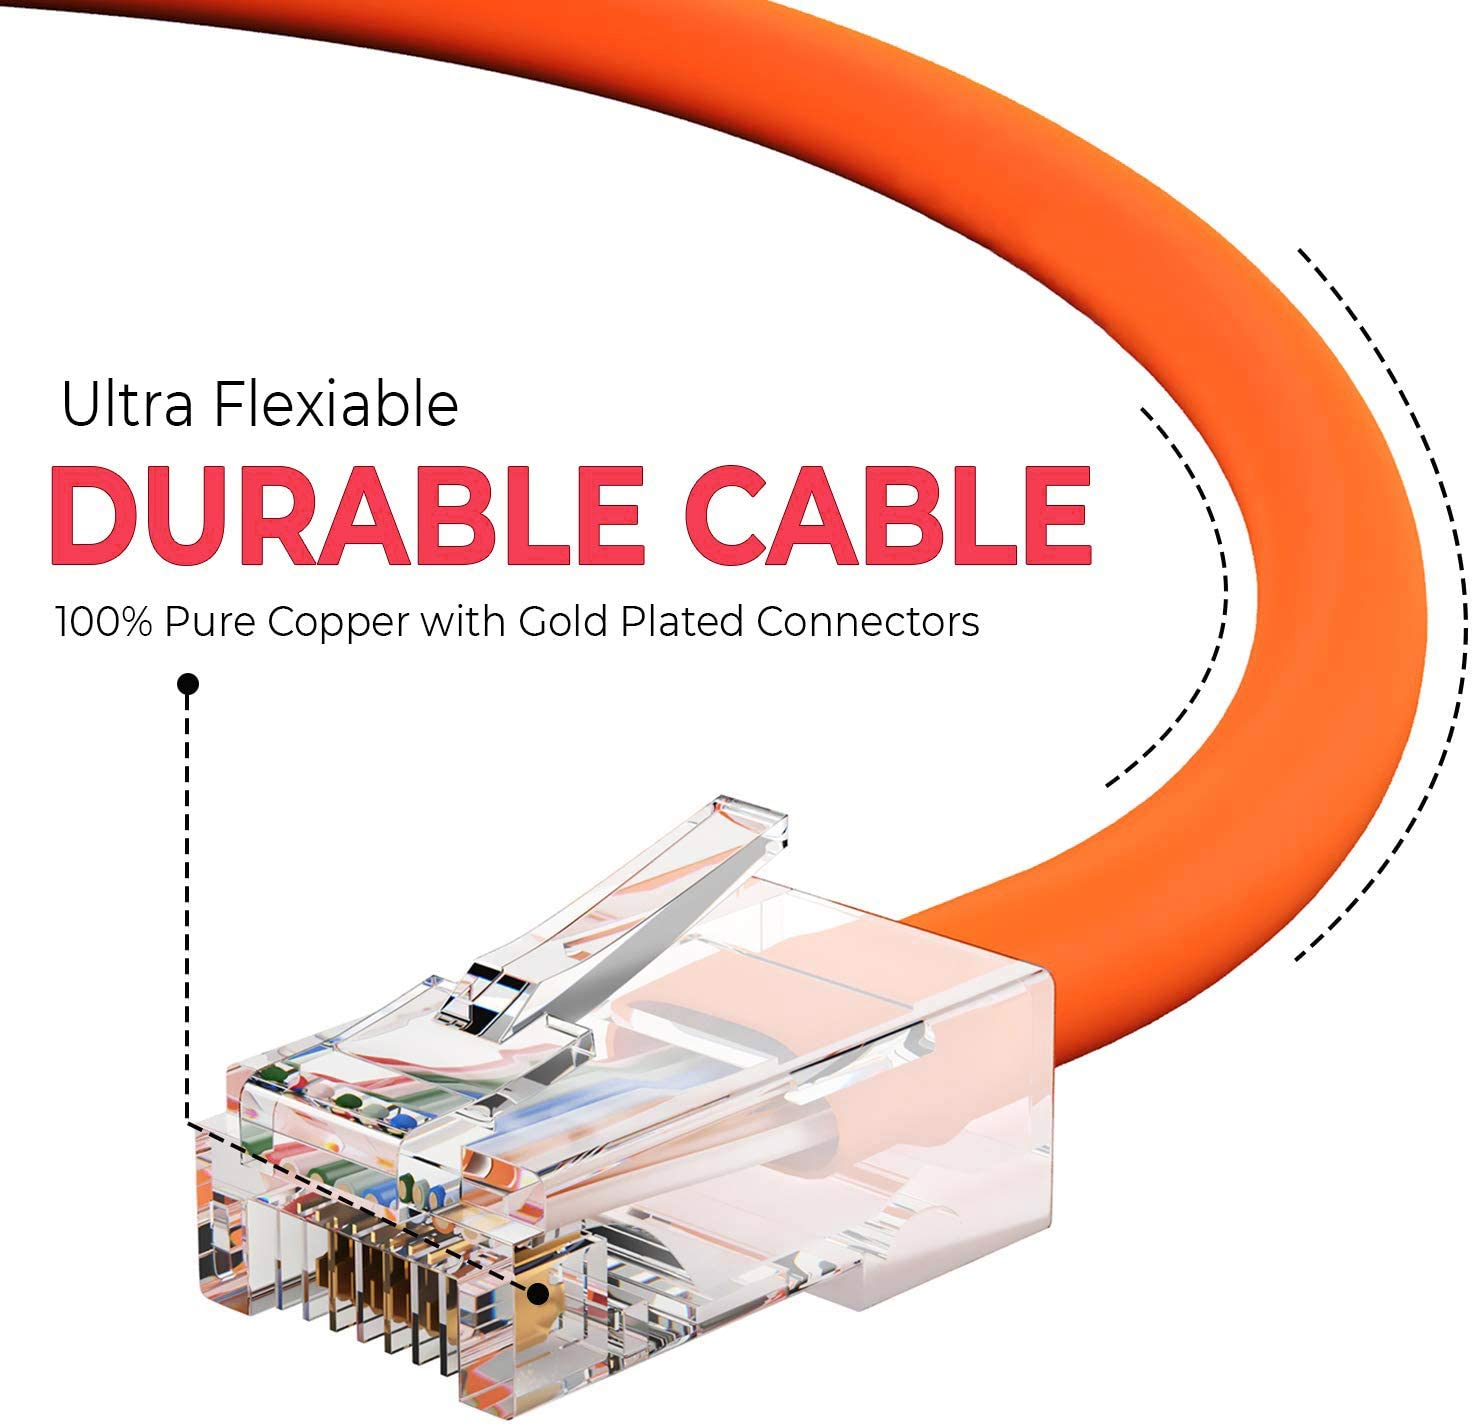 Professional Series 350MHZ 1Gbps Network//Internet Cable BoltLion BL-696345 Bootless Cat5e RJ45 Ethernet Cable 10 Feet 4 Pack Orange